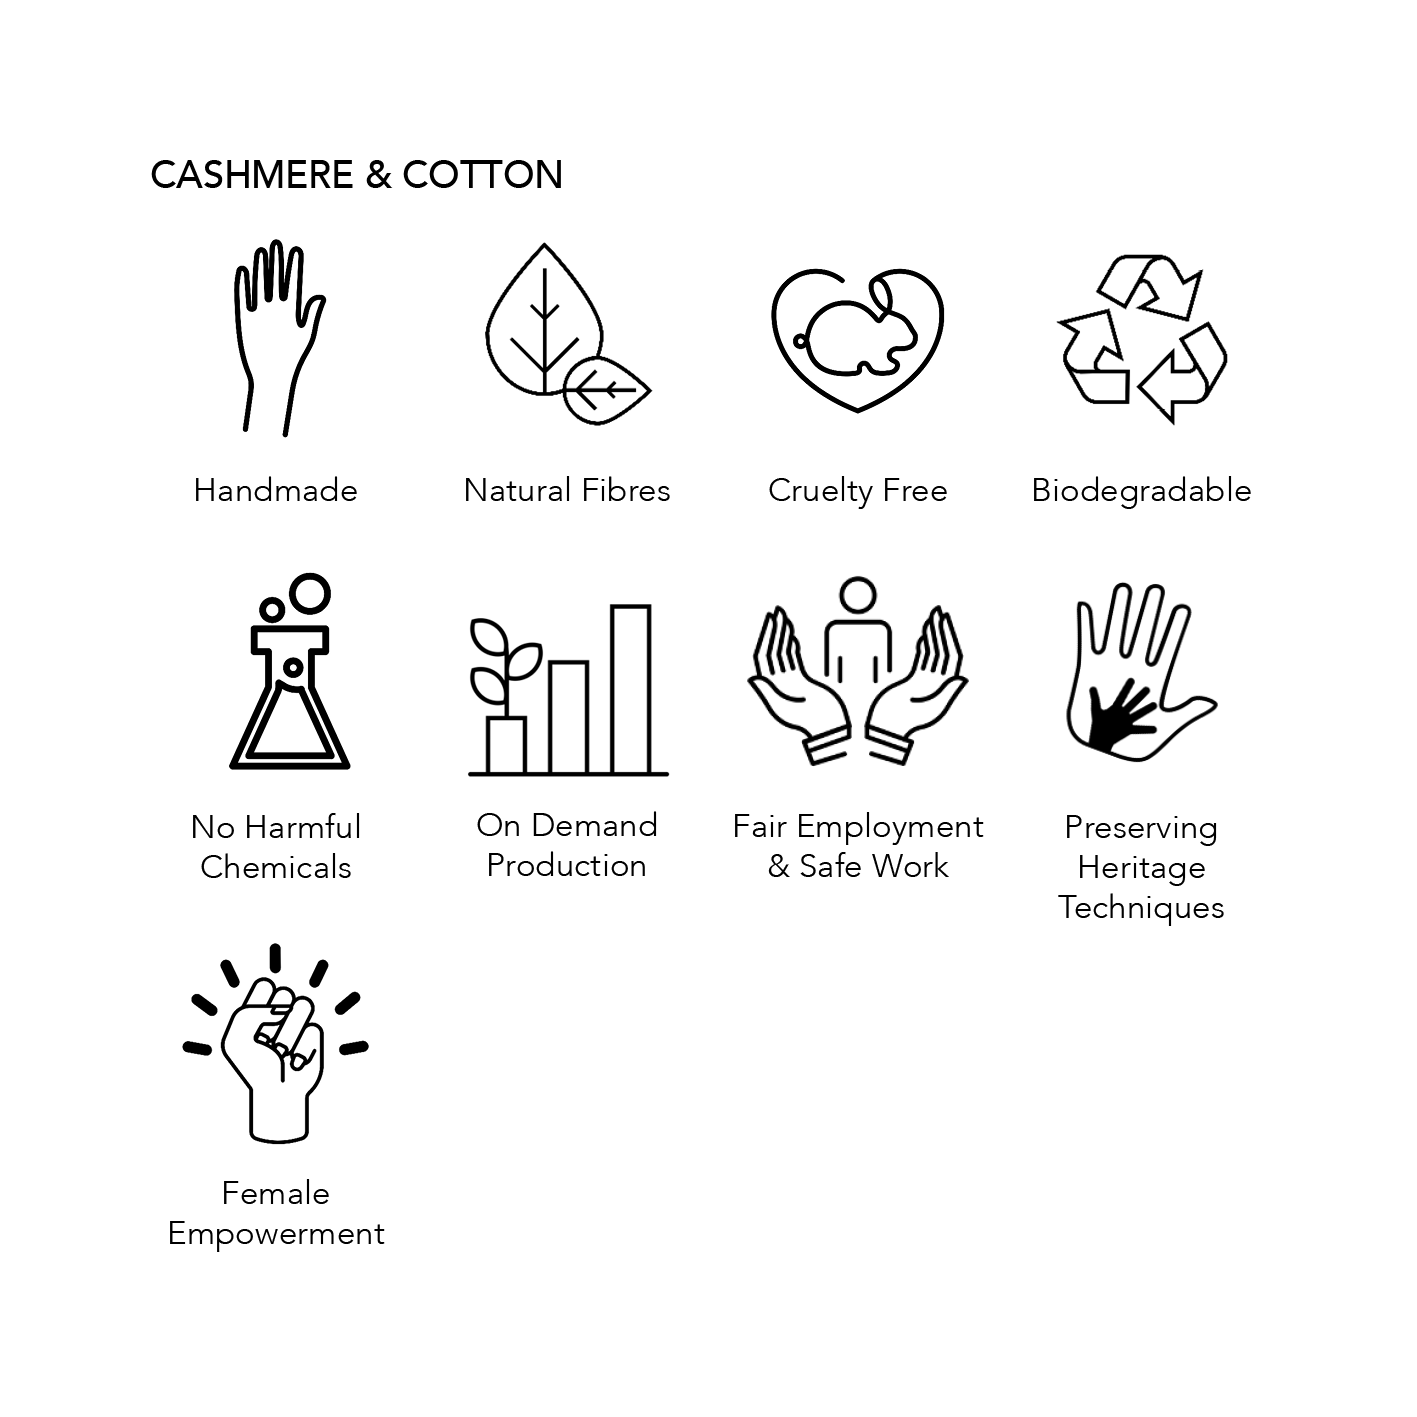 Thread Tales Cashmere & Cotton Sustainability Credentials; handmade, natural fibres, cruelty free, biodegradable, no harmful chemicals, on demand production, fair employment and safe work, preserving heritage techniques, female empowerment